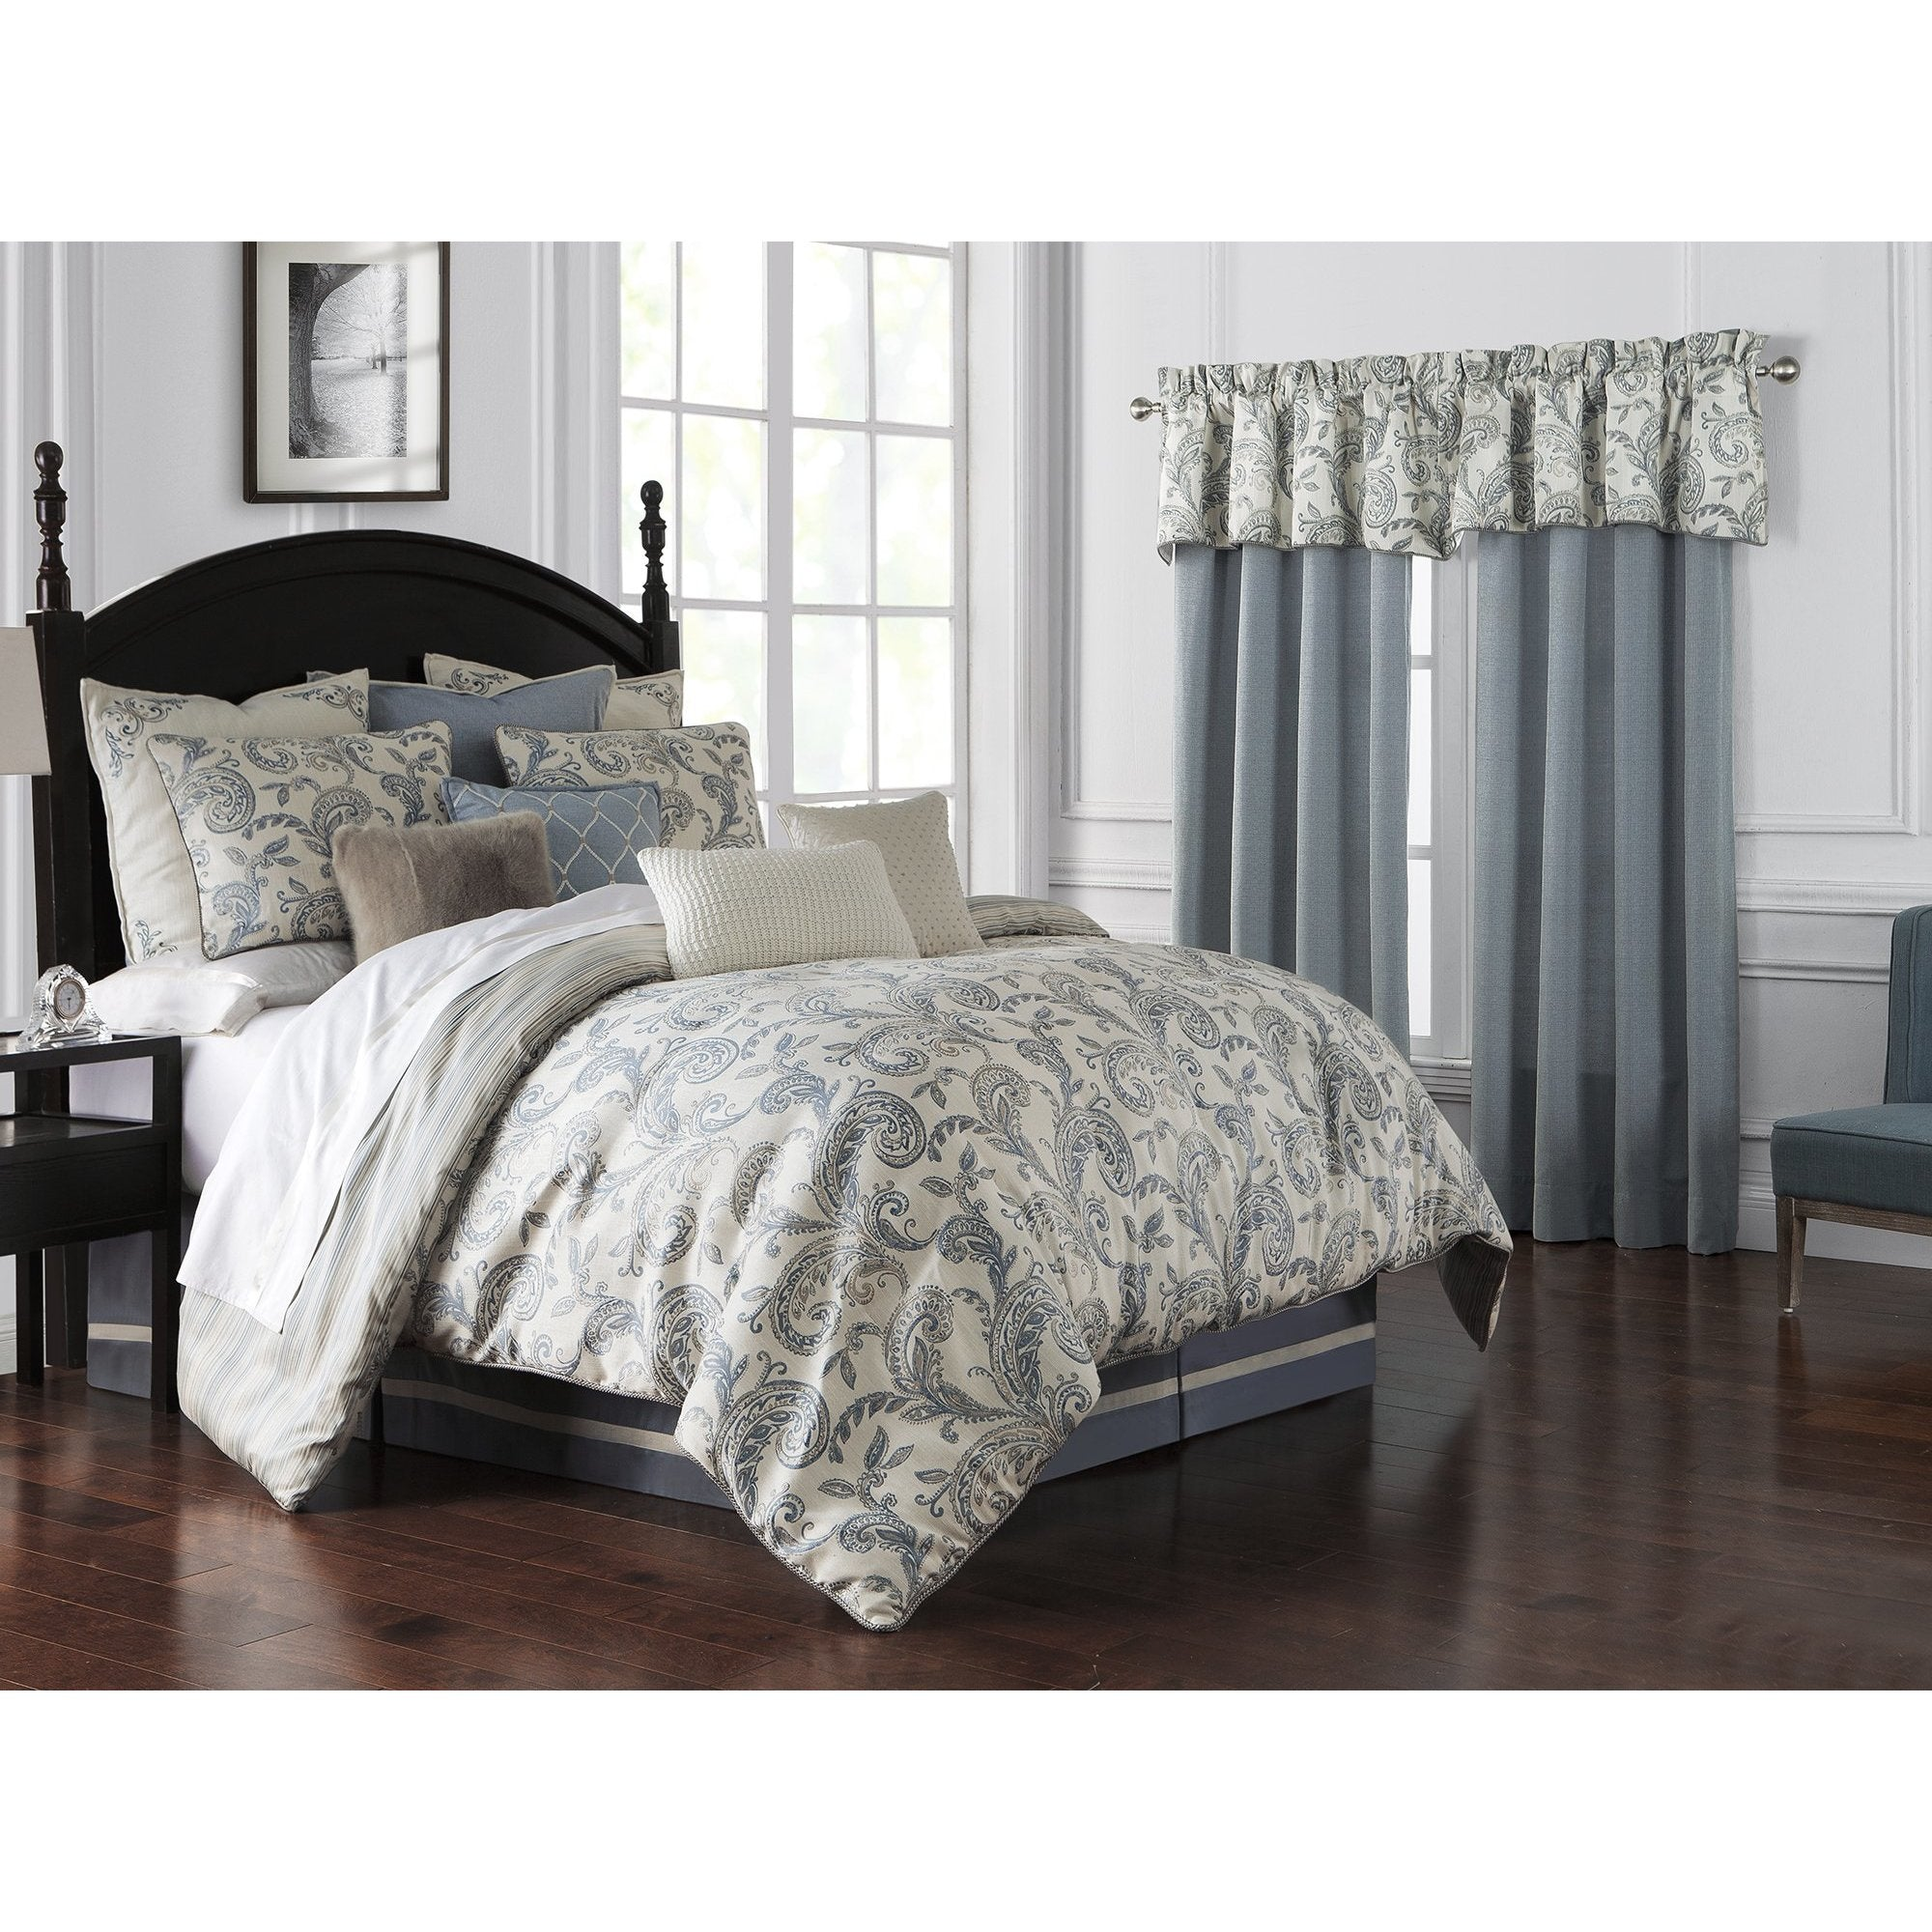 Florence Chambray Blue 4-Piece Reversible Comforter Set by Waterford [Luxury comforter Sets] [by Latest Bedding]